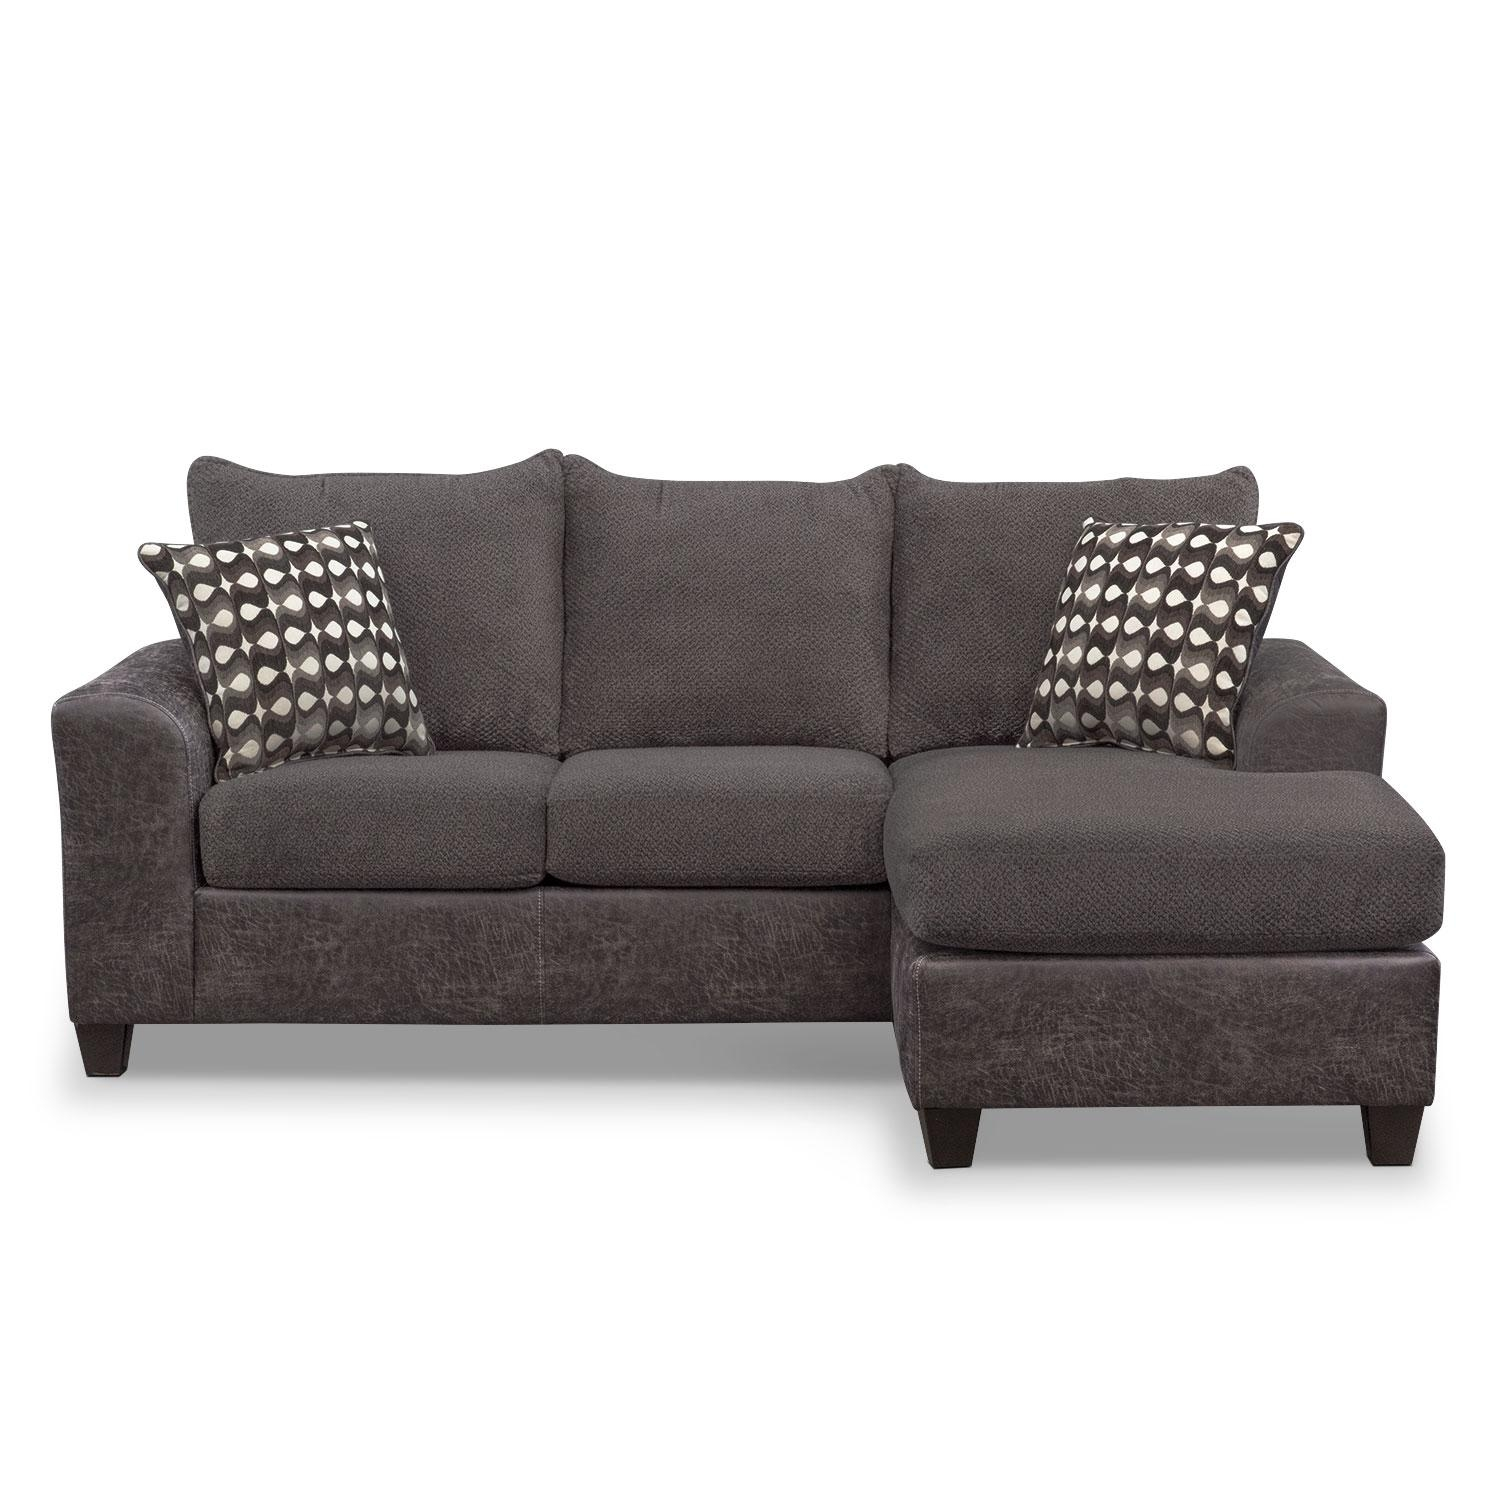 Brando Sofa With Chaise – Smoke | Value City Furniture Within Long Chaise Sofa (Image 3 of 20)